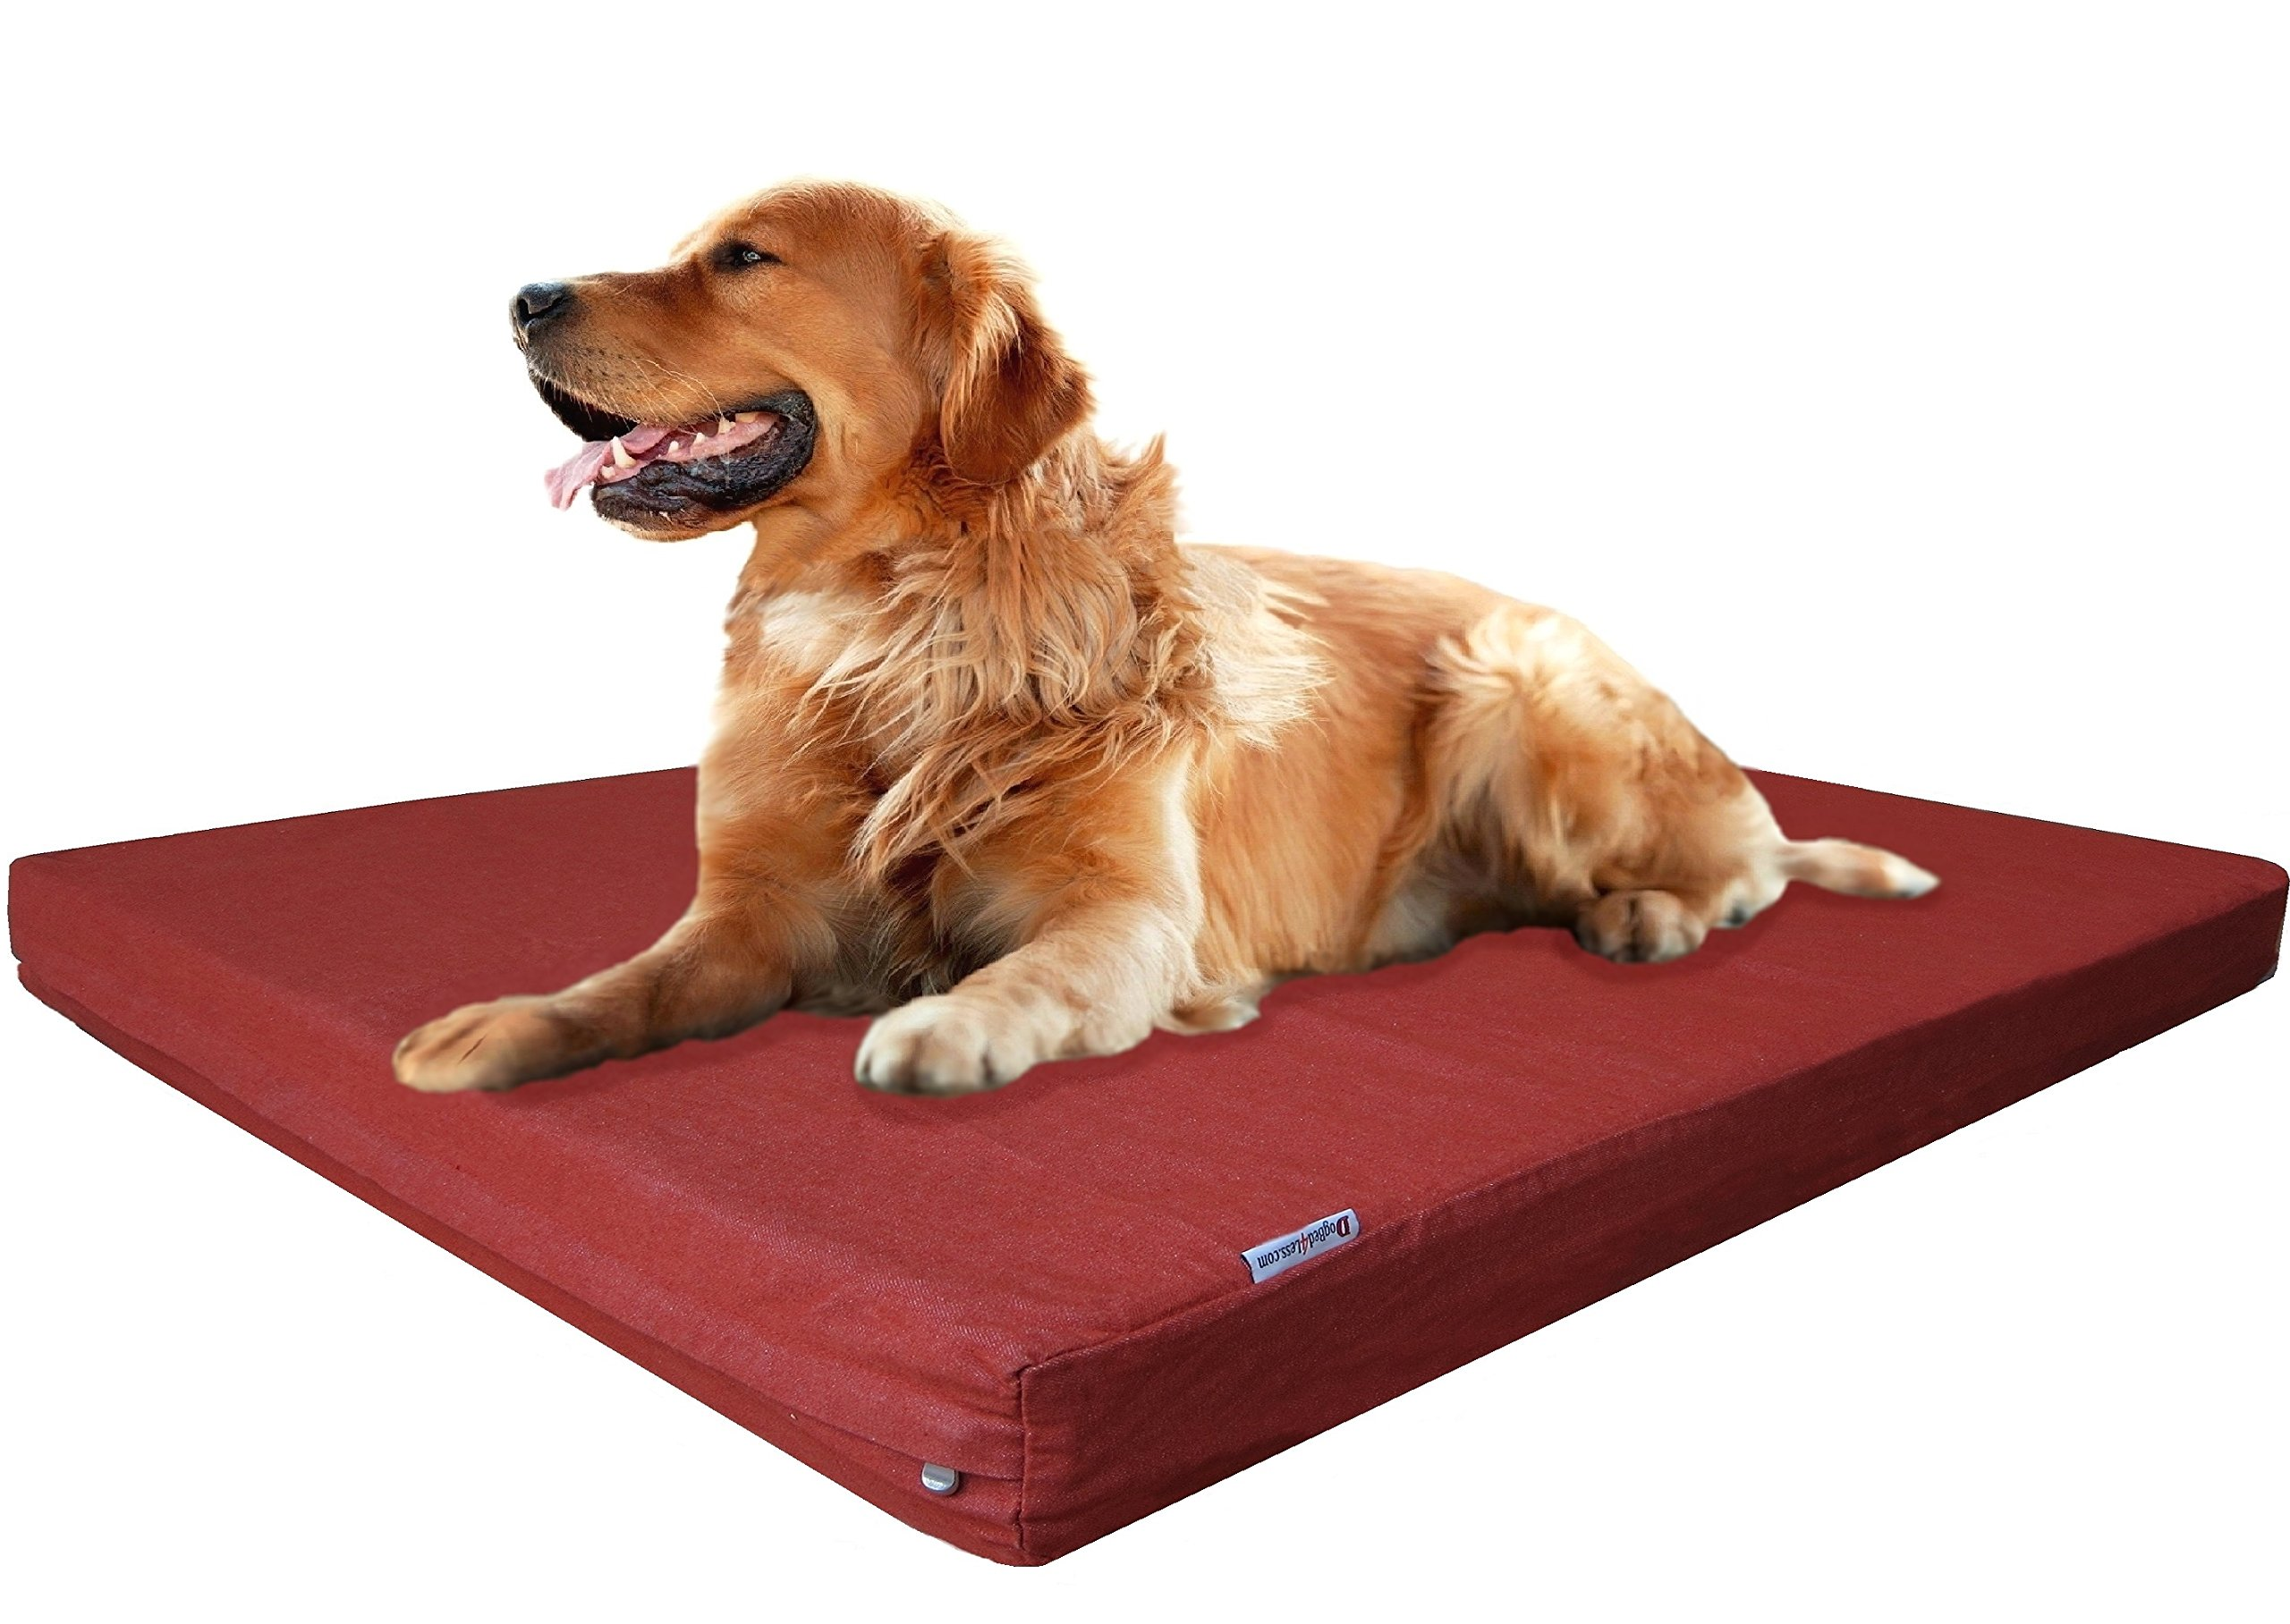 Dogbed4less XL Durable Waterproof Orthopedic Memory Foam Dog Pet Bed with Extra External Cover, Bombay Brown, 40X35X4 Inches